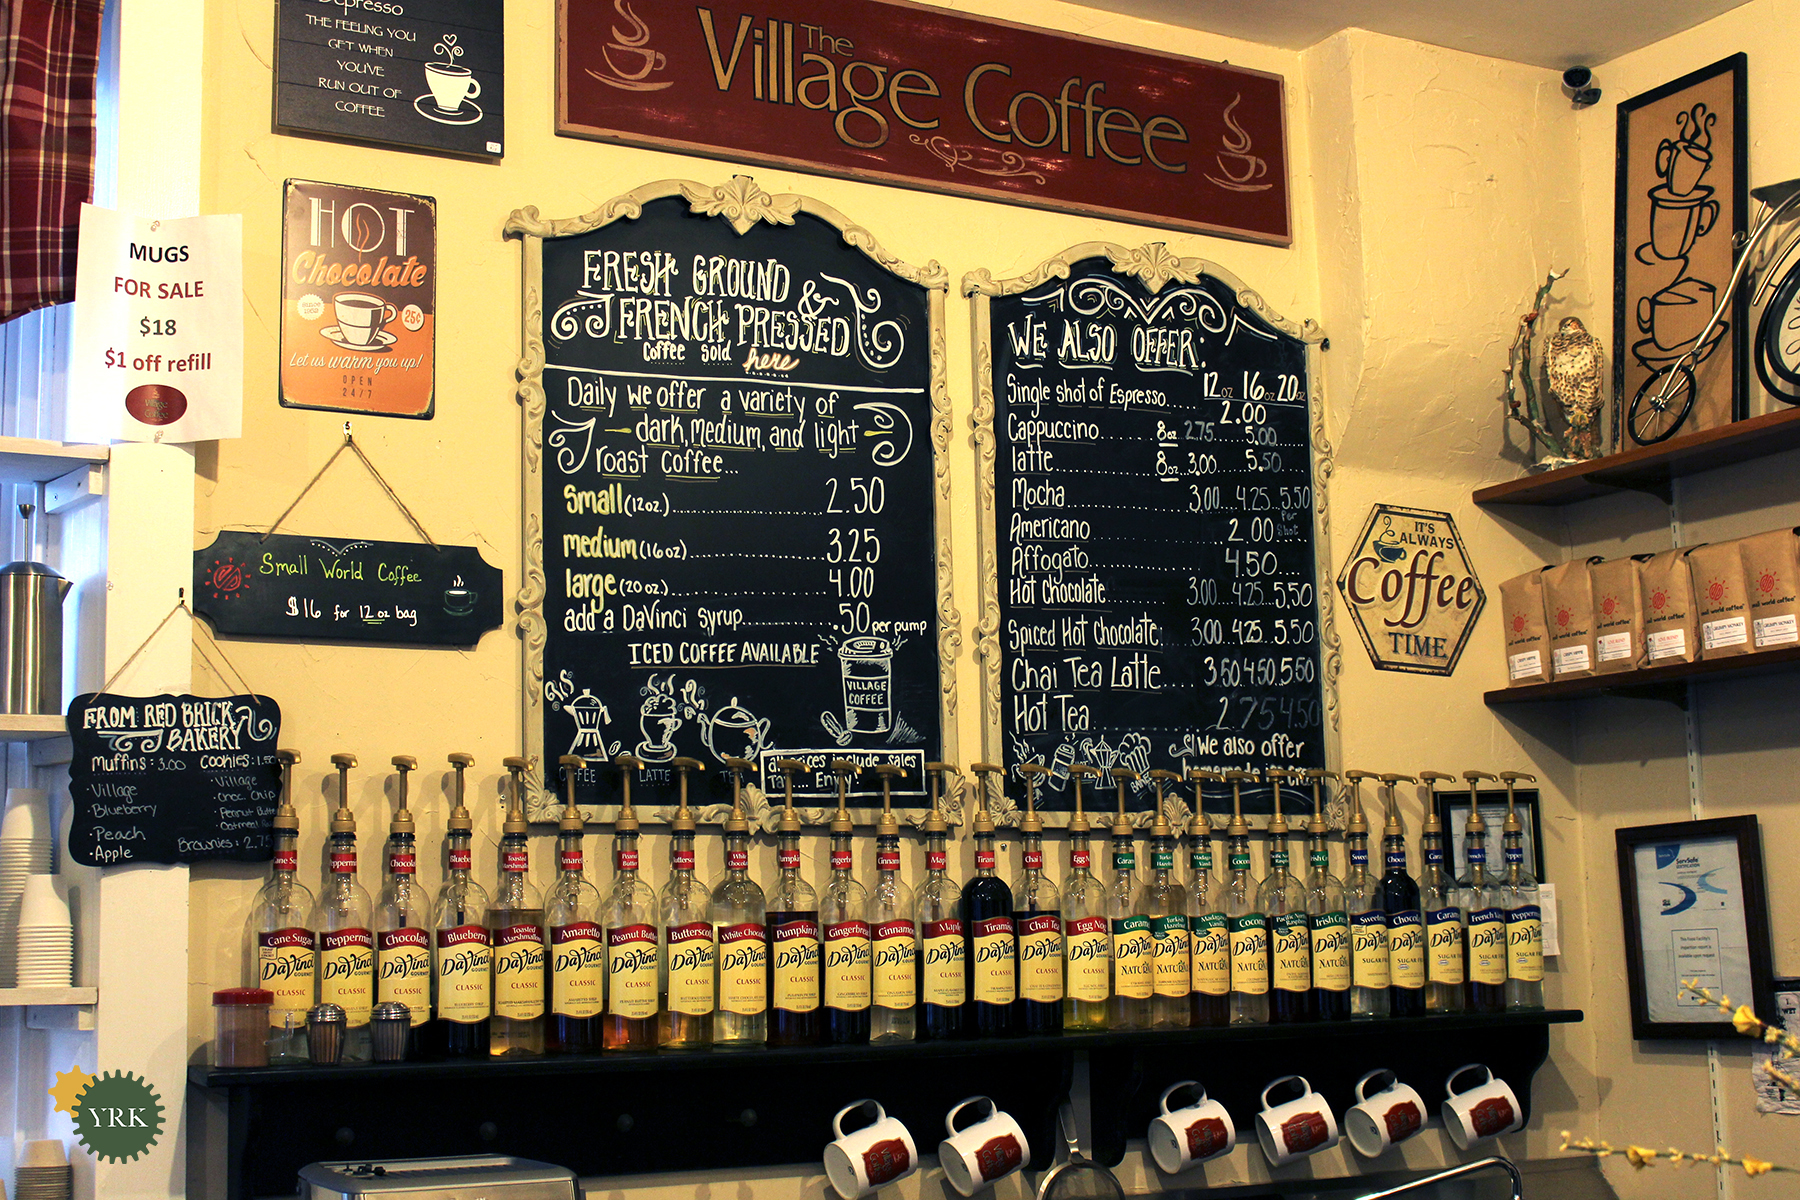 Working with the Community Through Caffeine and Ice Cream: The Village Coffee and Cream